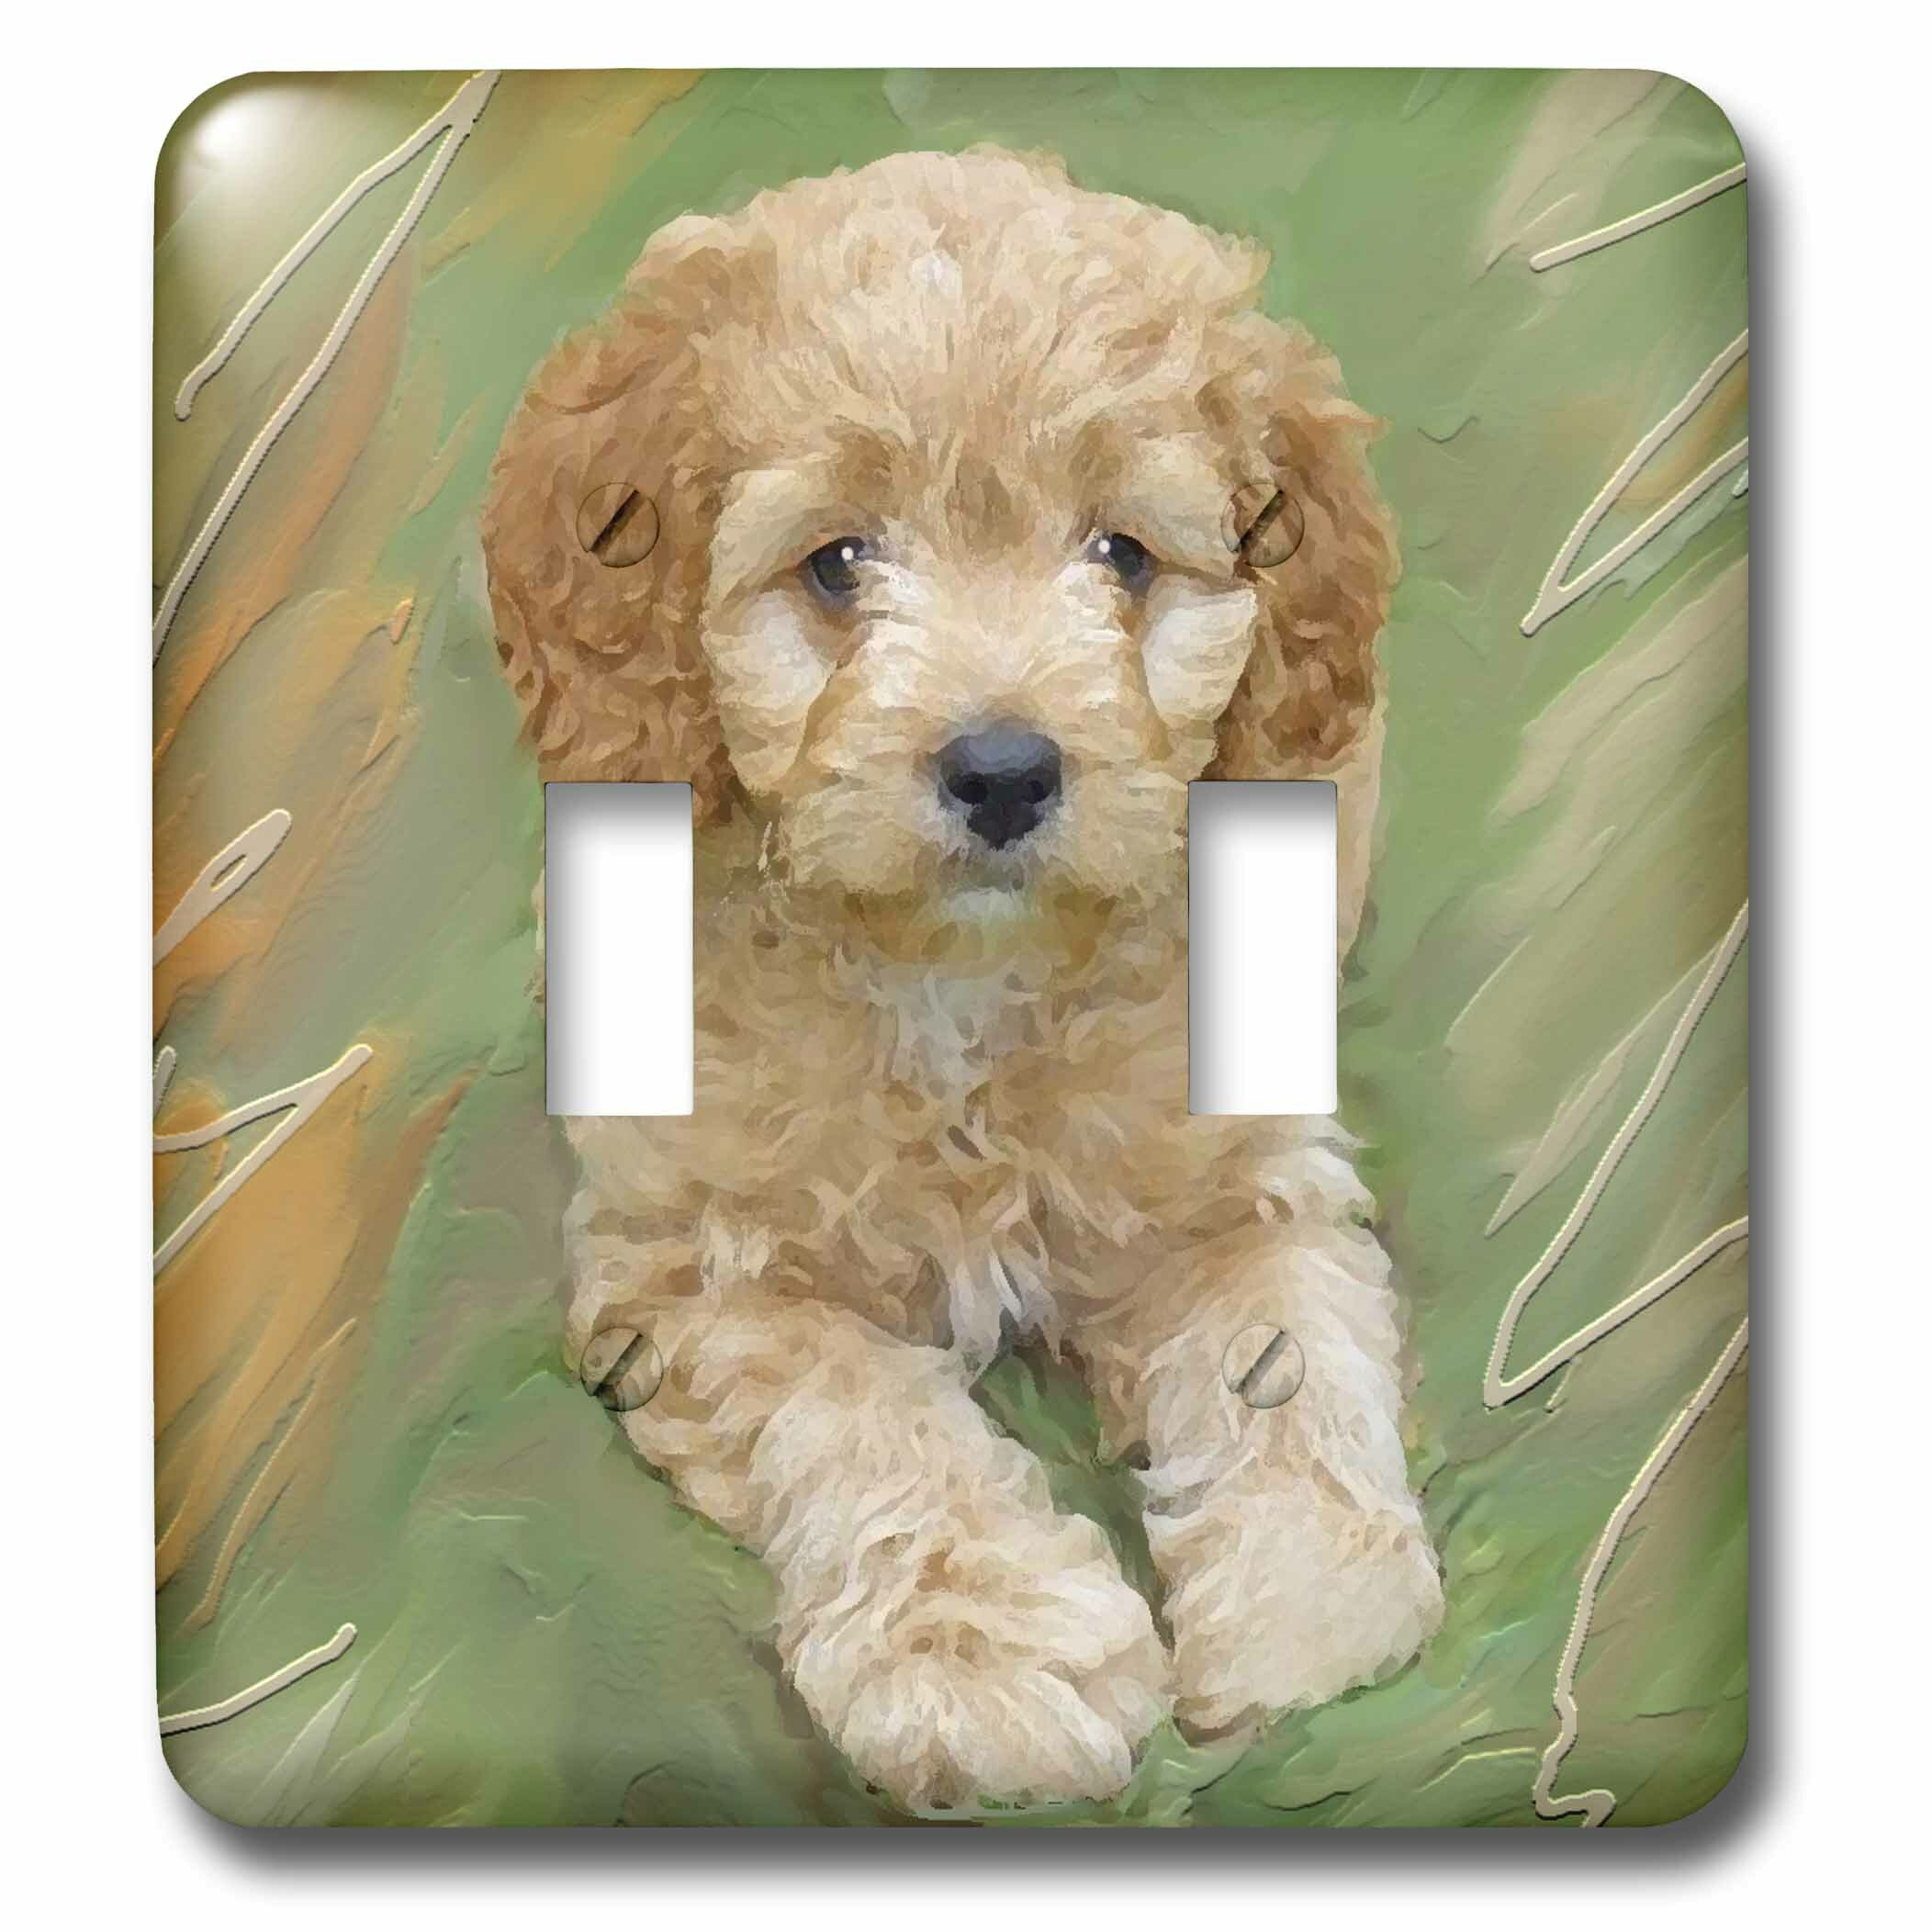 3drose Miniature Poodle Puppy 2 Gang Toggle Light Switch Wall Plate